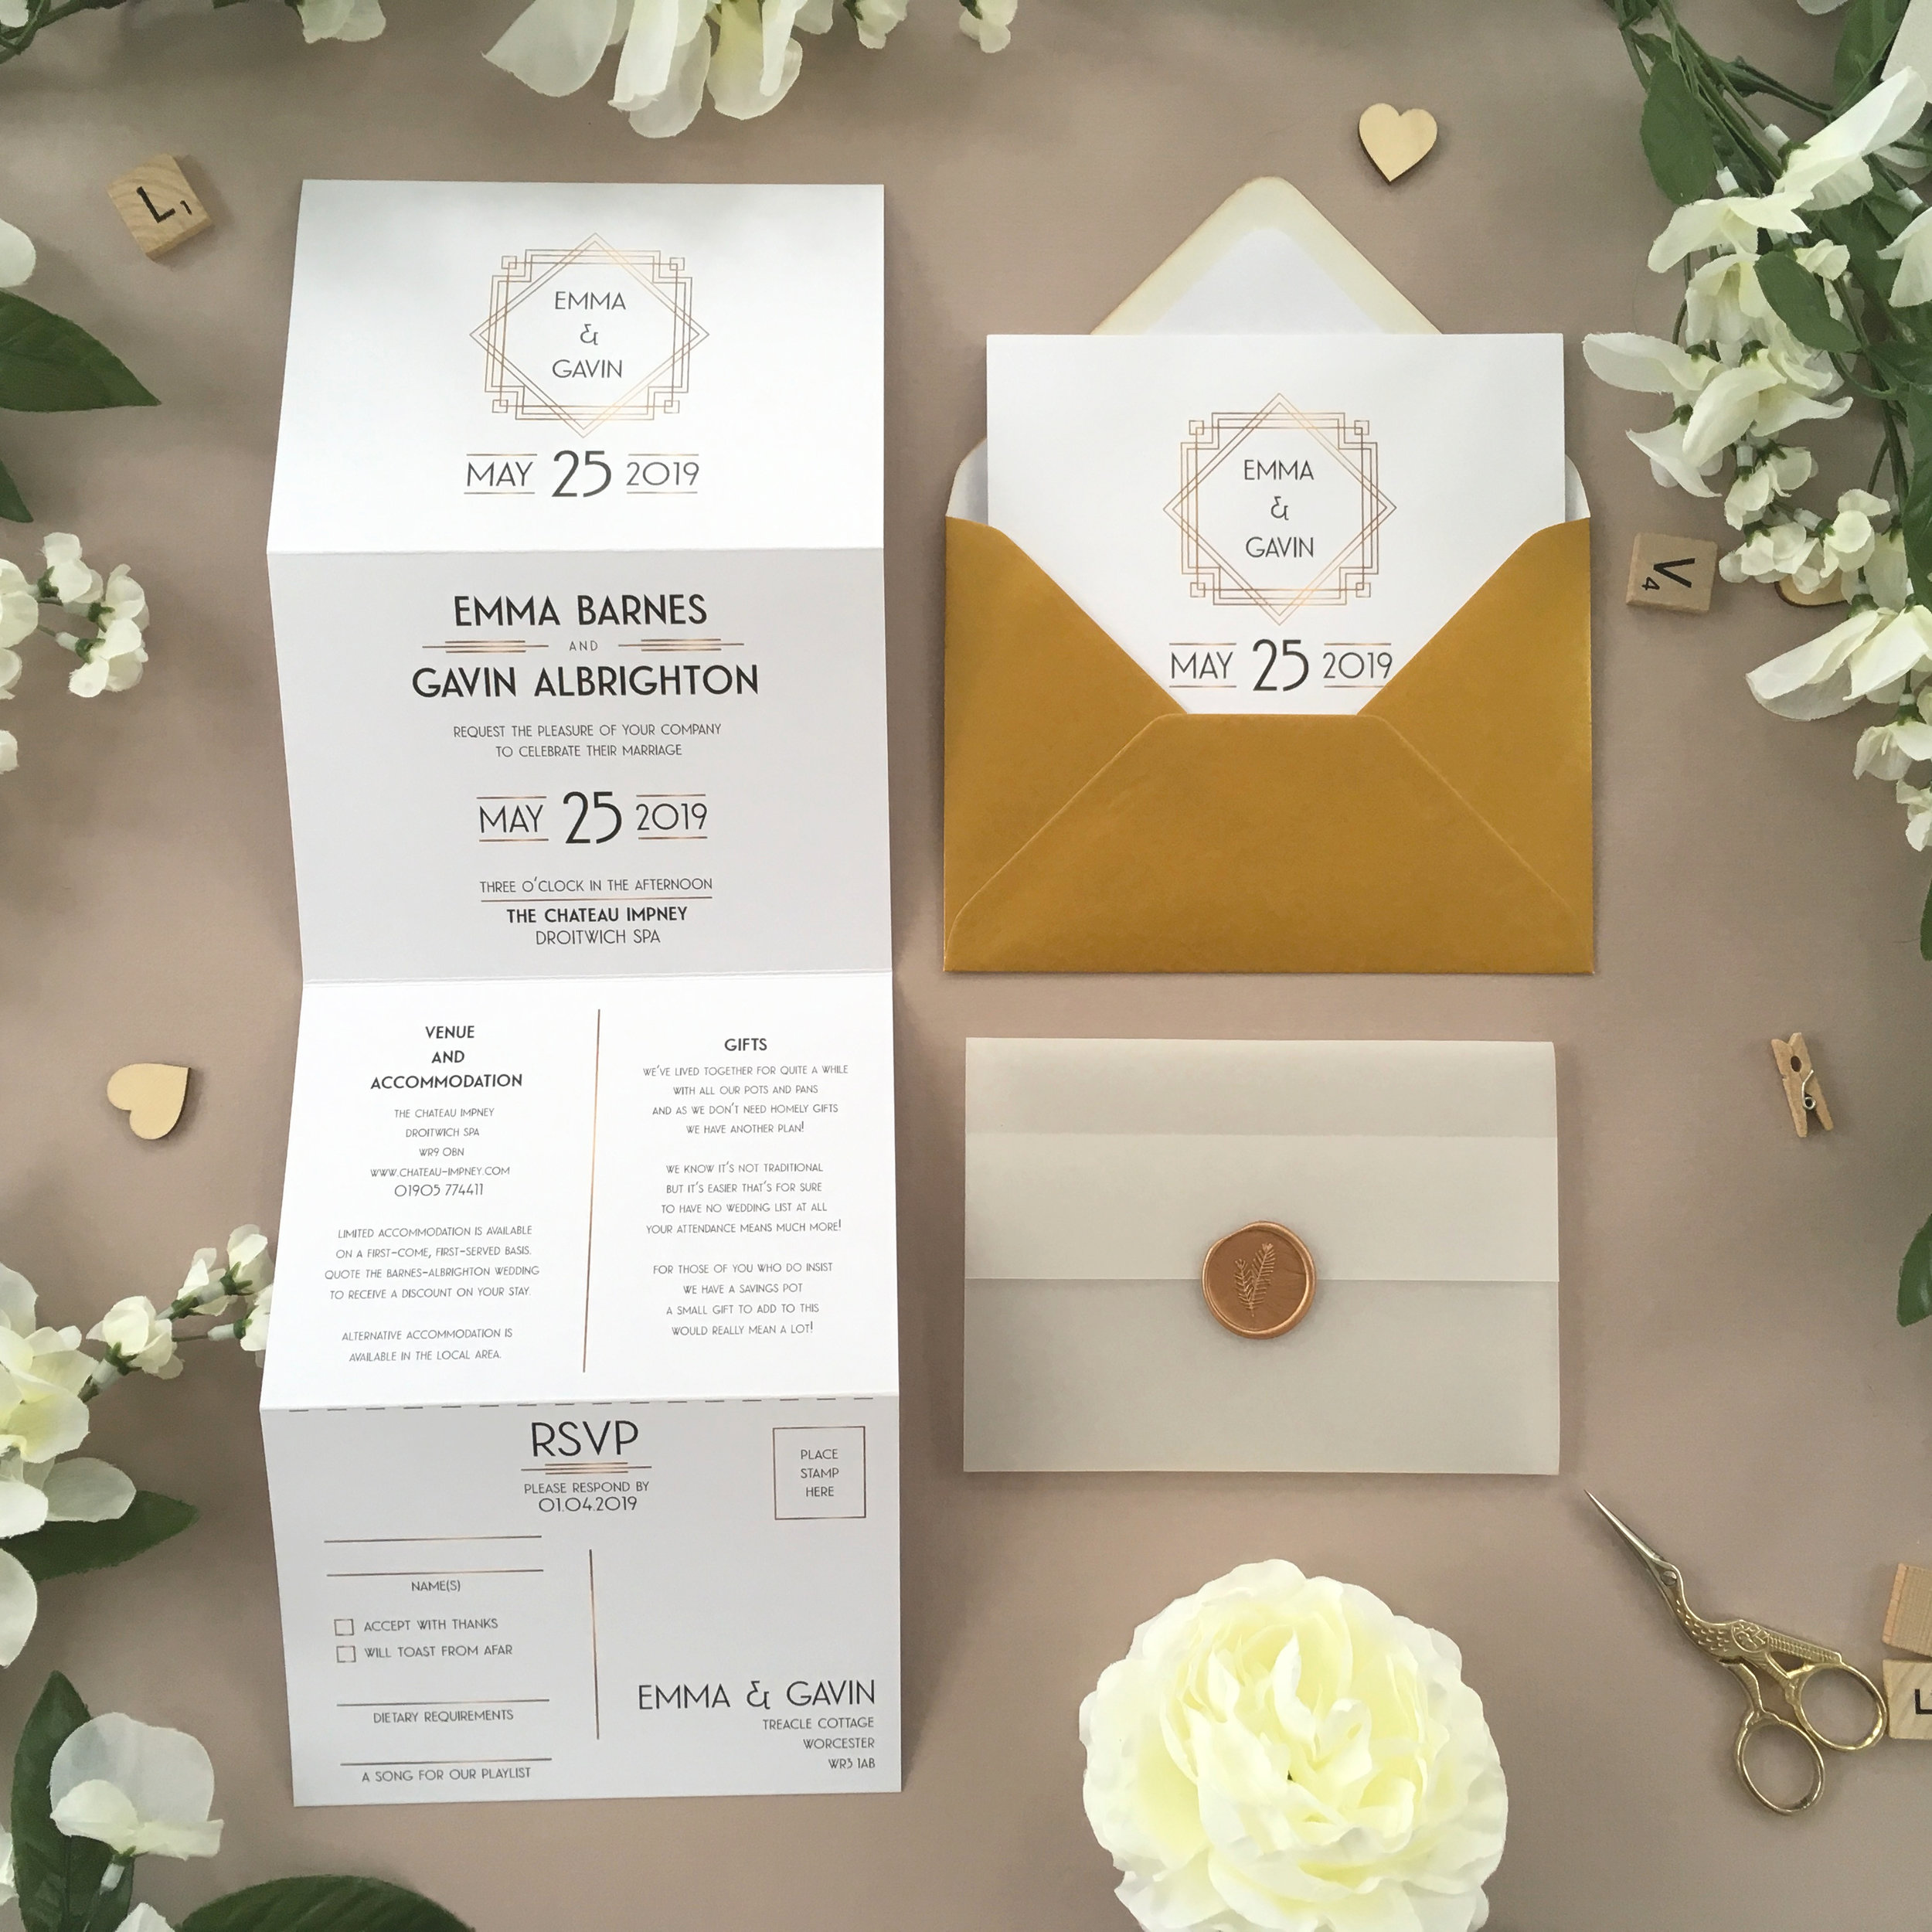 Earl's Court - We use classic Art Deco styling with gold accents and traditional 1920's typography for a classical Gatsby-inspired wedding invitation.Our concertina invitations are a great all-in-one solution, with a detachable RSVP at the bottom of the invitation - all guests need to do is fill in their details, put a stamp in the corner and post!Concertina invitations can be provided on an as-is basis, or can be provided bound with a vellum jacket and timeless wax seal, or tied with ribbon or twine for a lovely hand-finished approach.- Concertina Invitation - from £1.95- Ribbon or Twine - £0.40- Vellum Jacket - £0.40- Wax Seal - £0.85 (Custom engraving also available)White envelope provided as standard with coloured upgrade available.